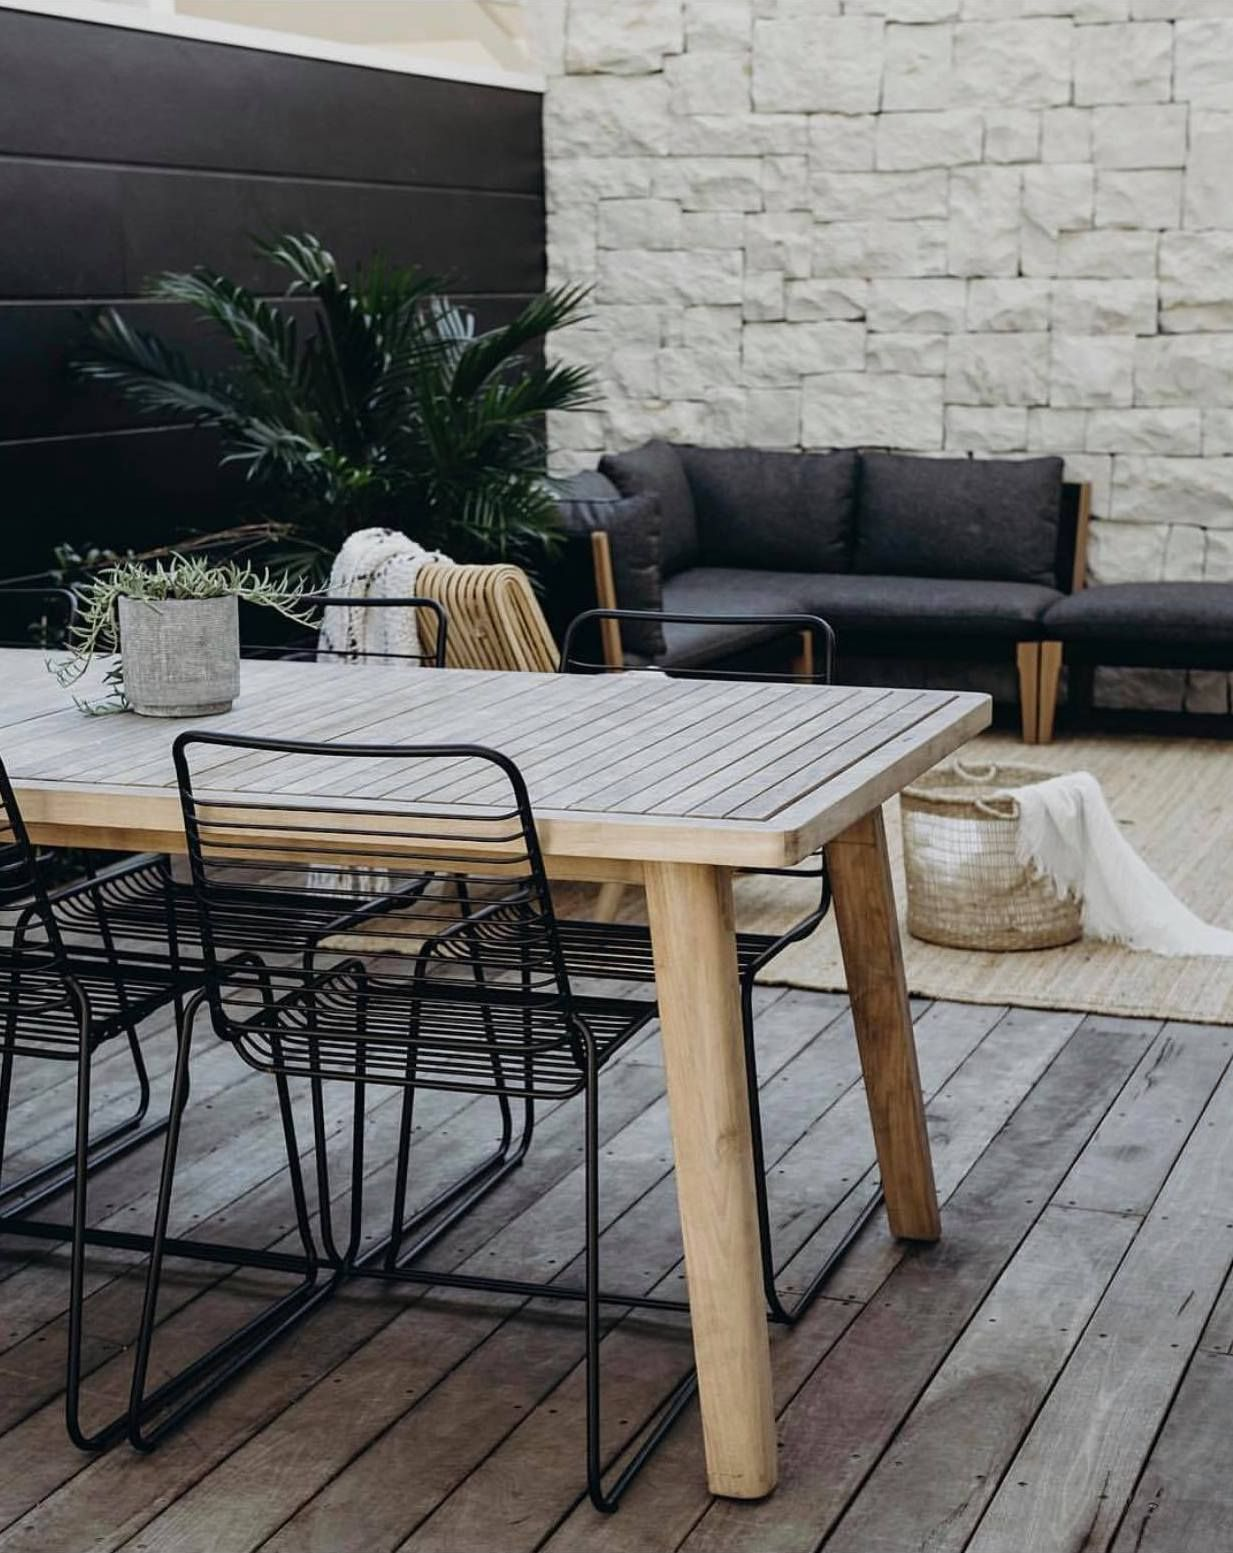 Pin by Annabel Coleman on Interior Design Outdoor